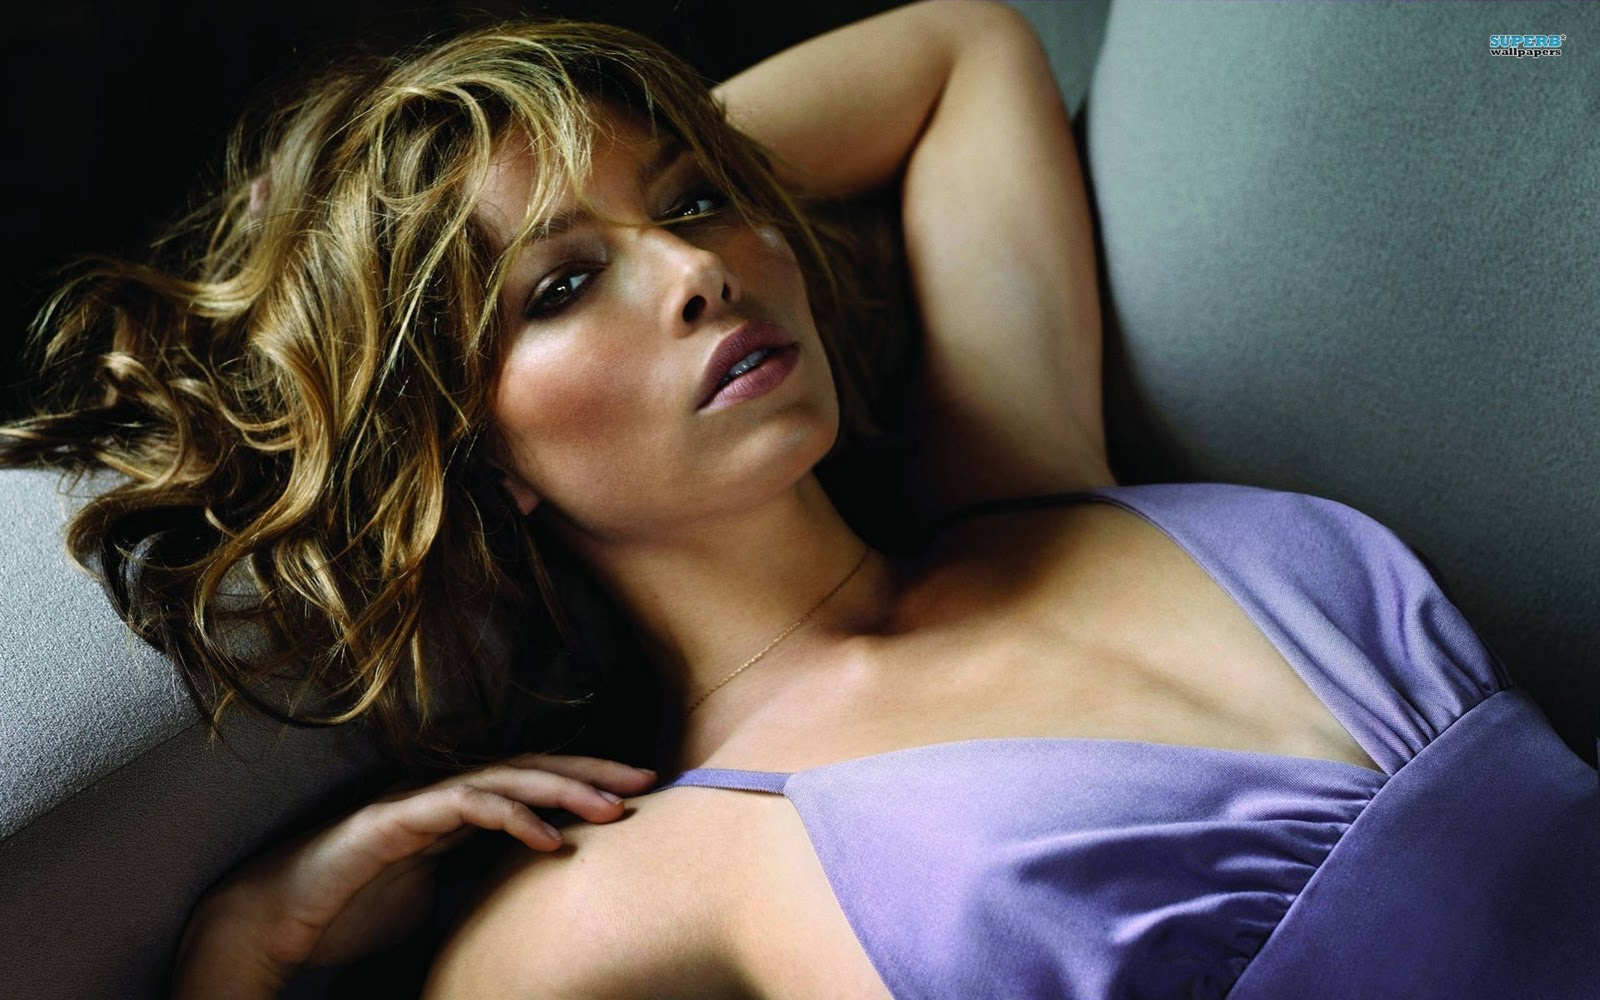 Sexy photos of jessica biel